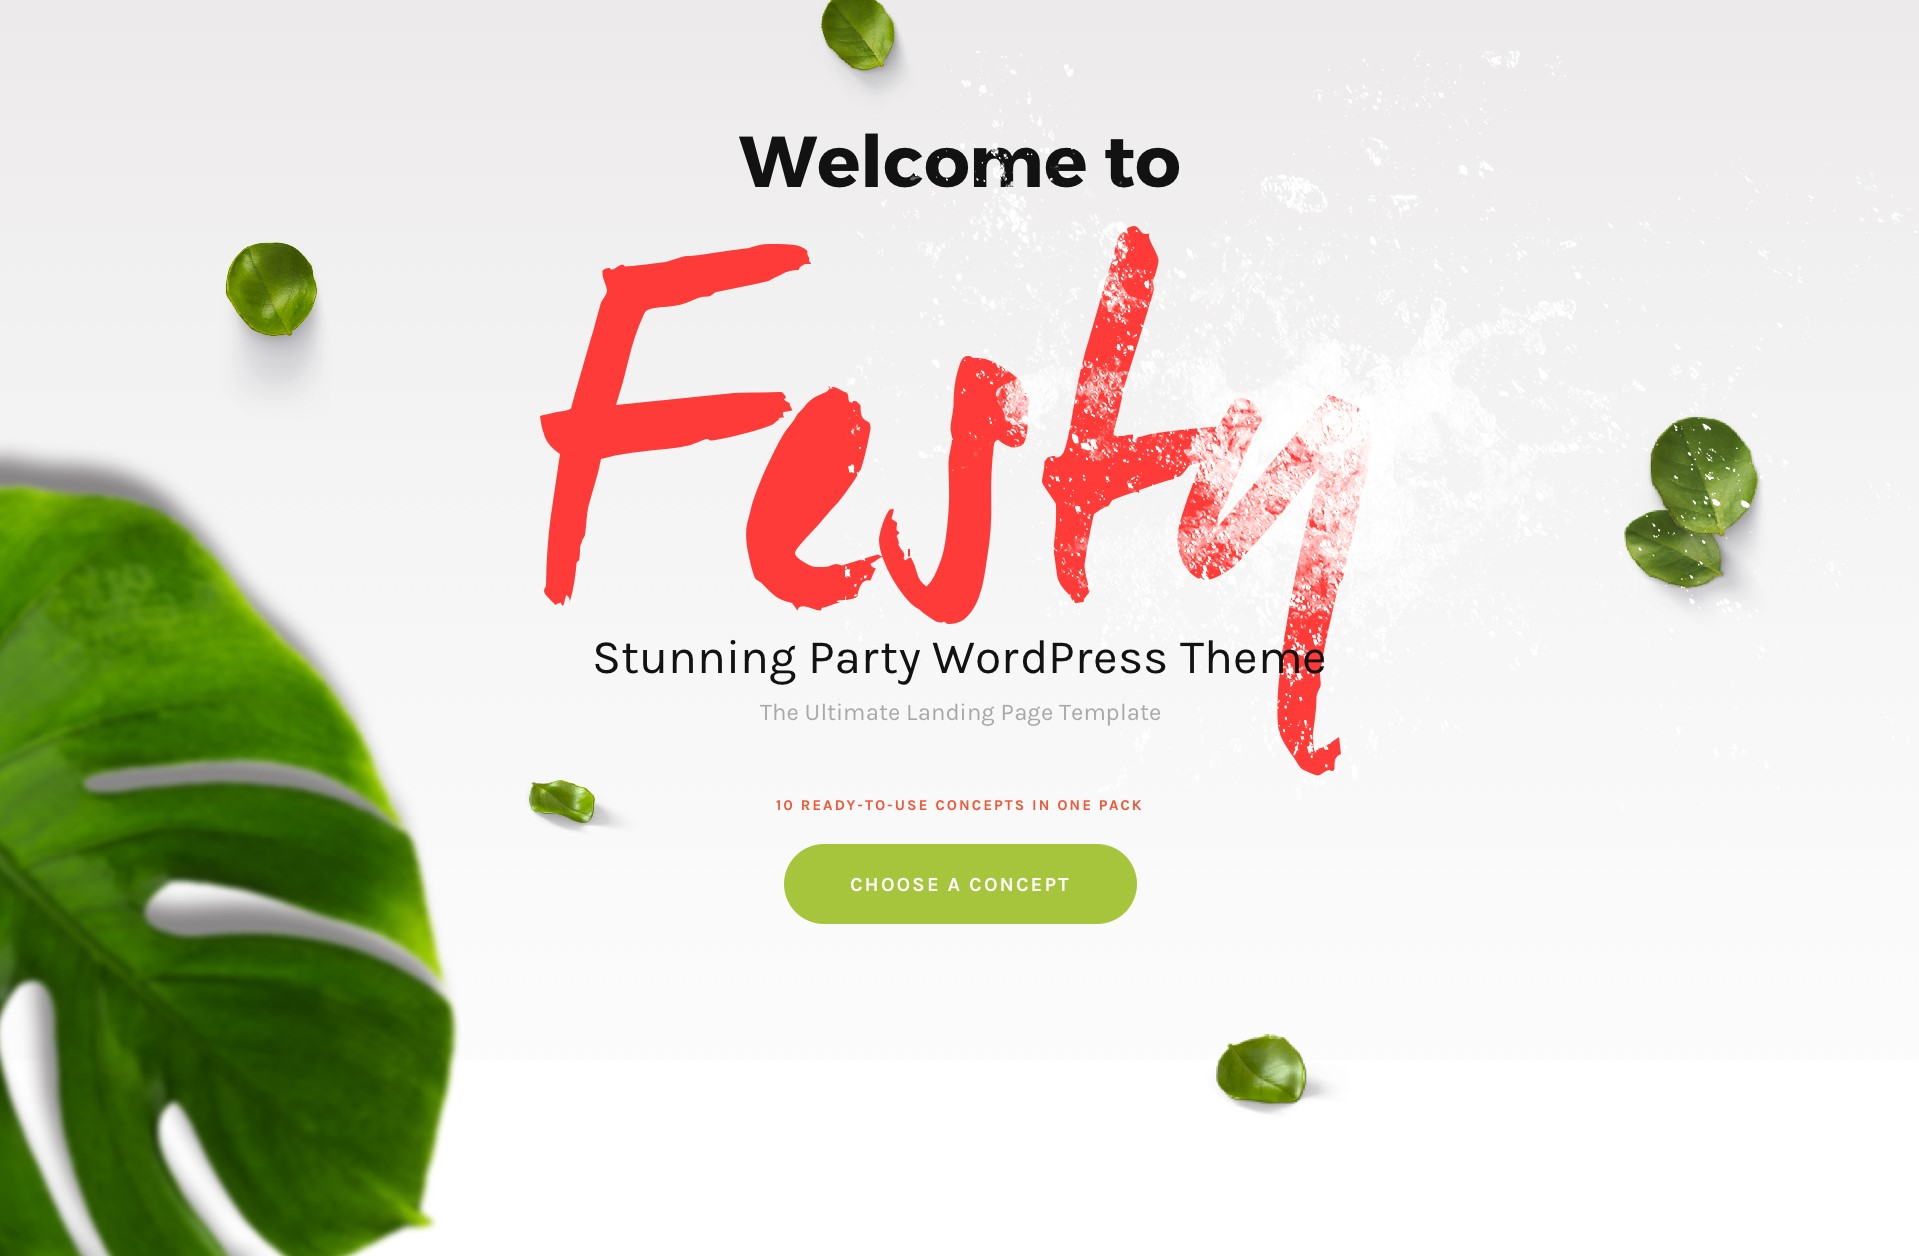 festy festival wordpress theme